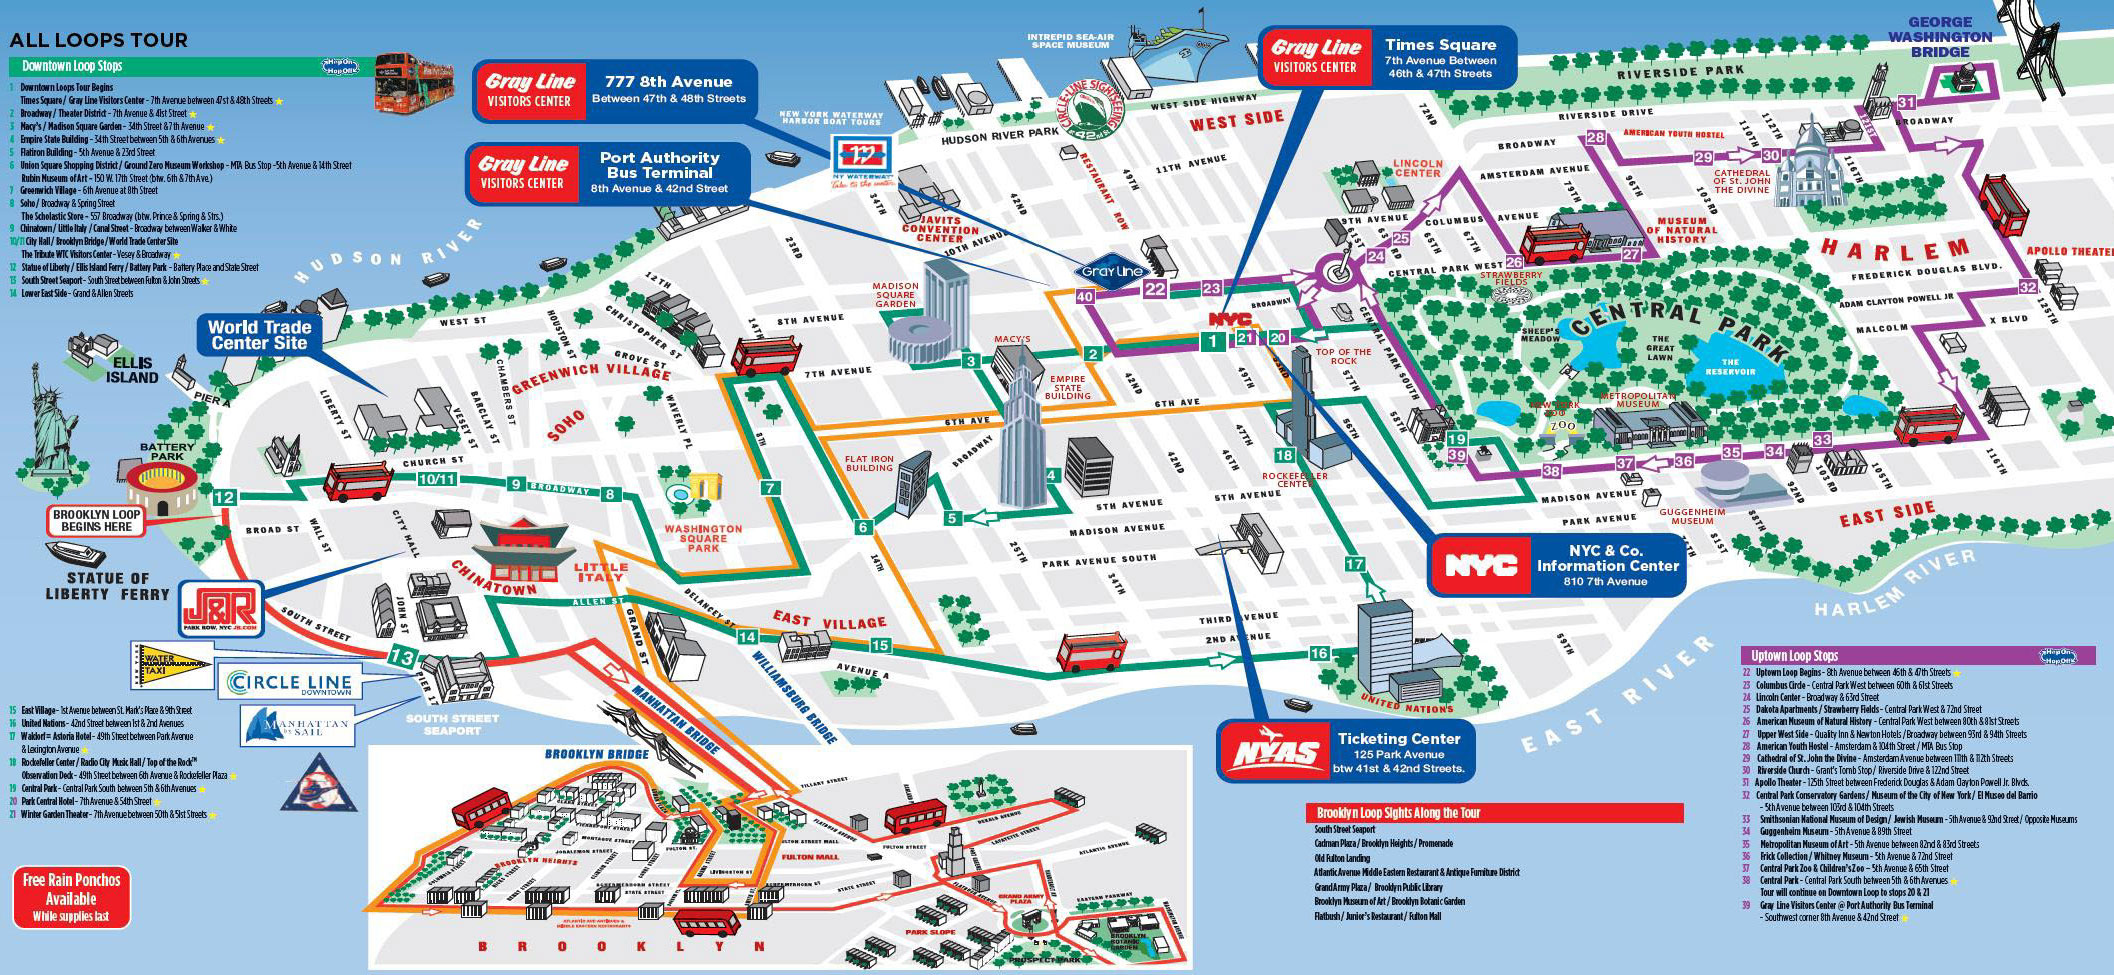 New-york-city-hop-on-hop-off-tour-in-new-york-city-map